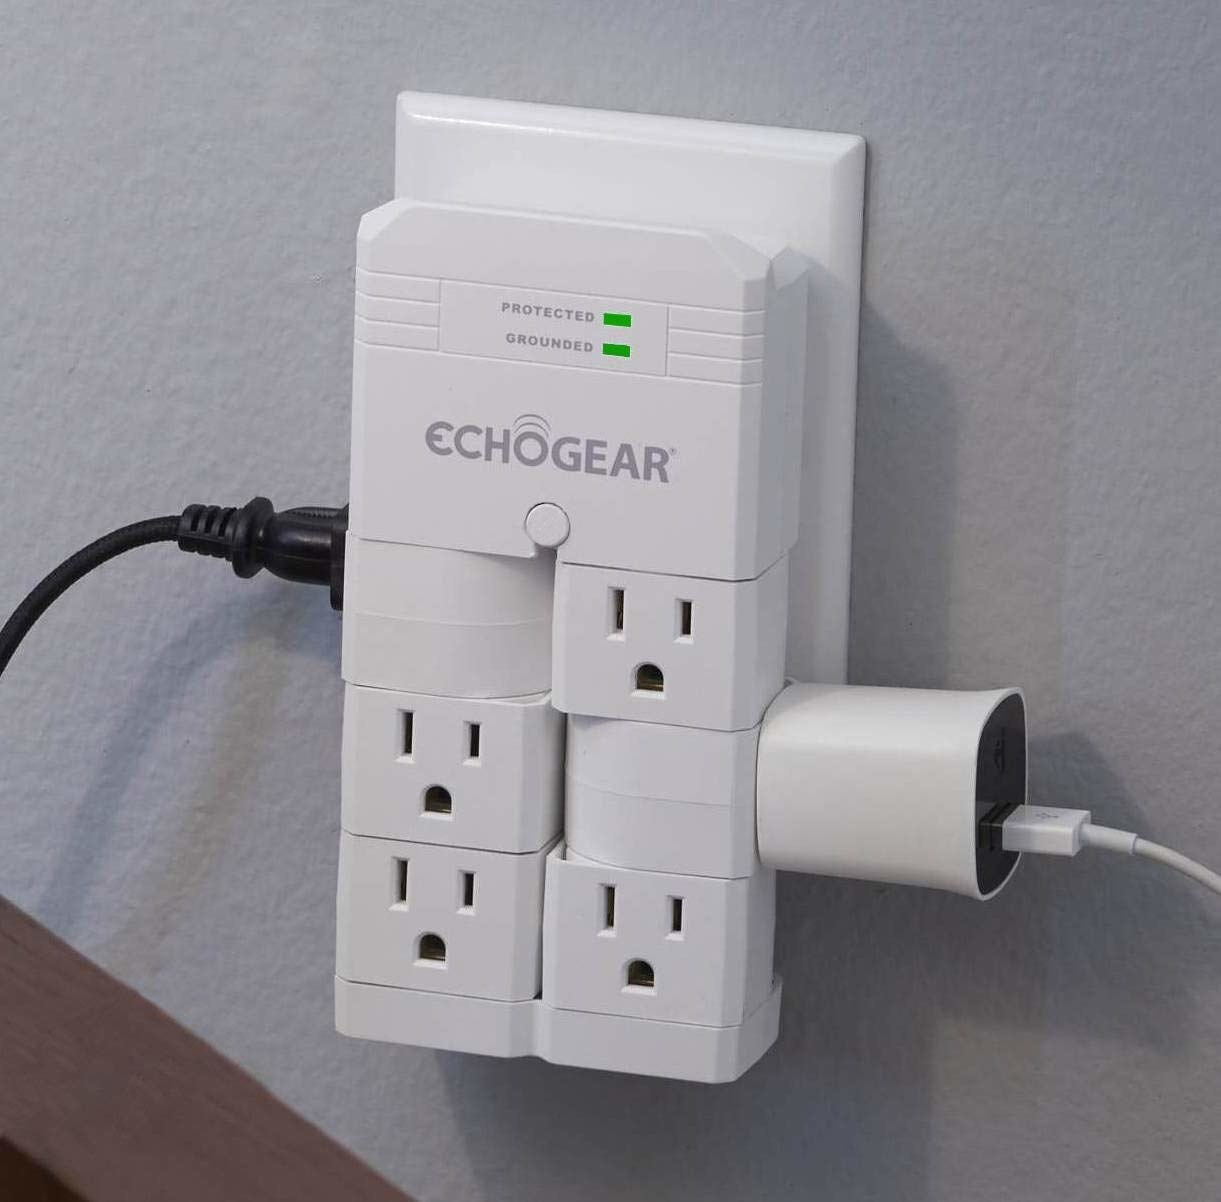 Surge protector with six outlets on wall